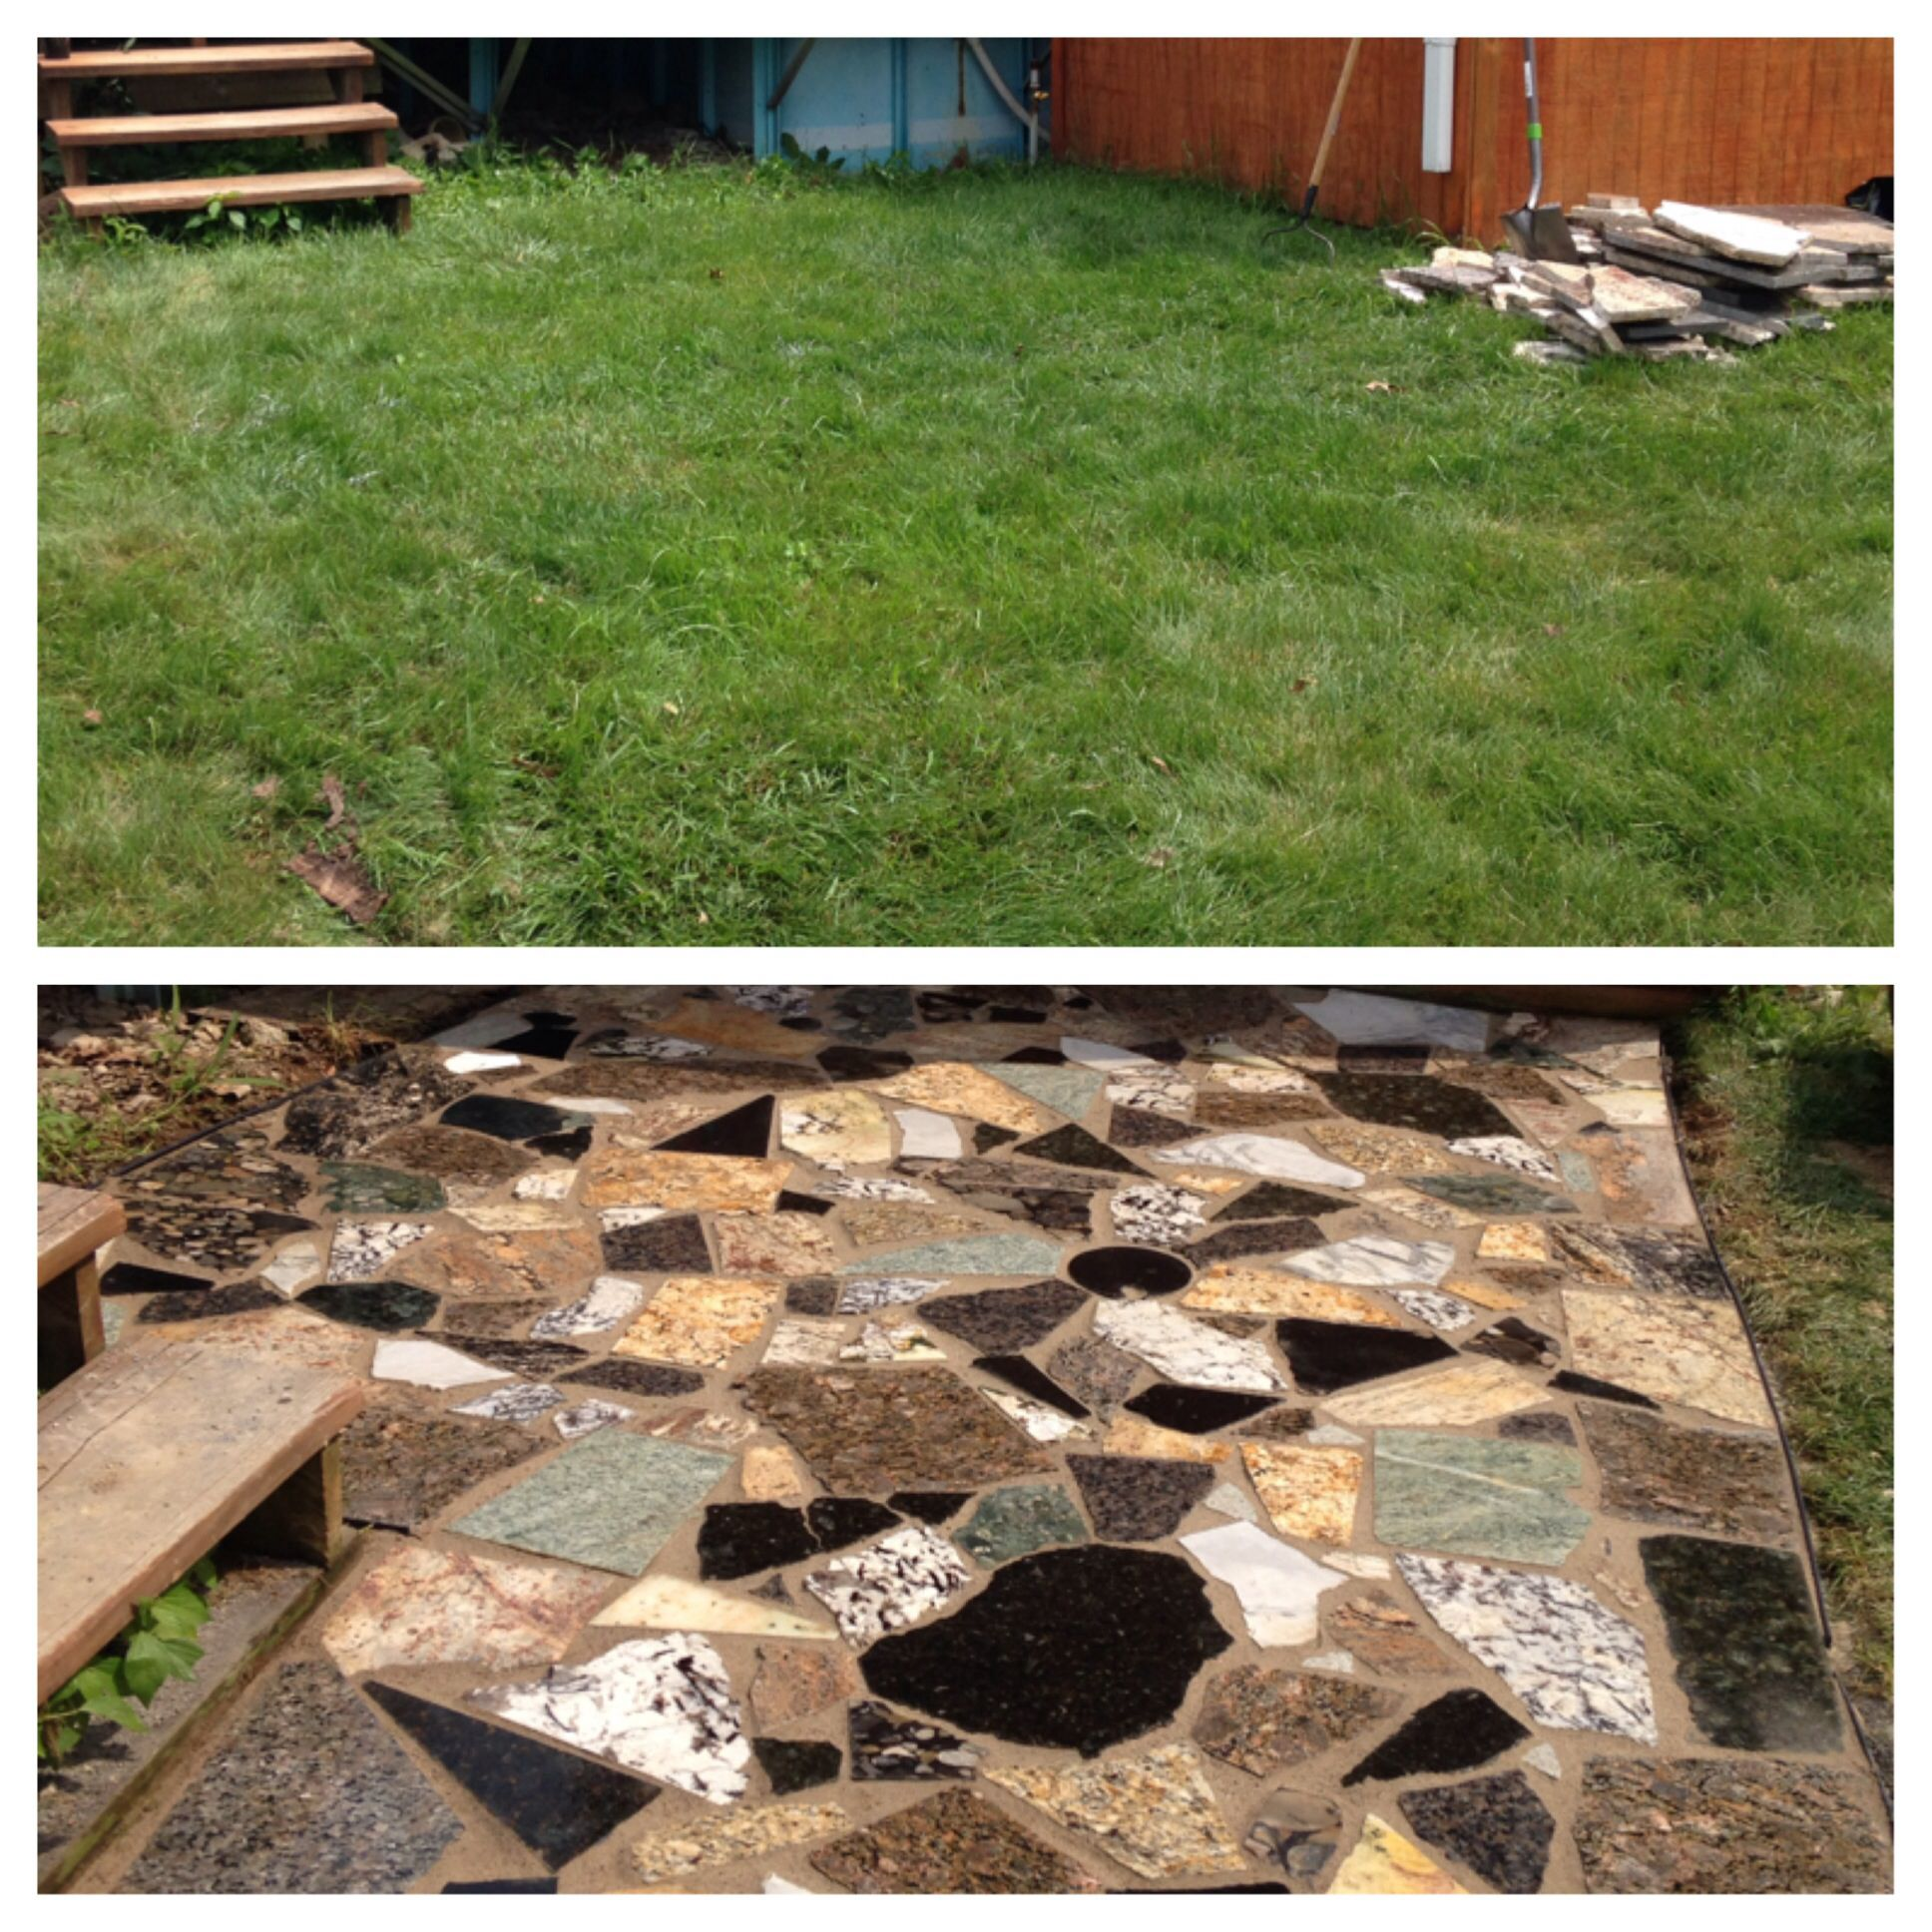 New patio with leftover pieces of marble and granite